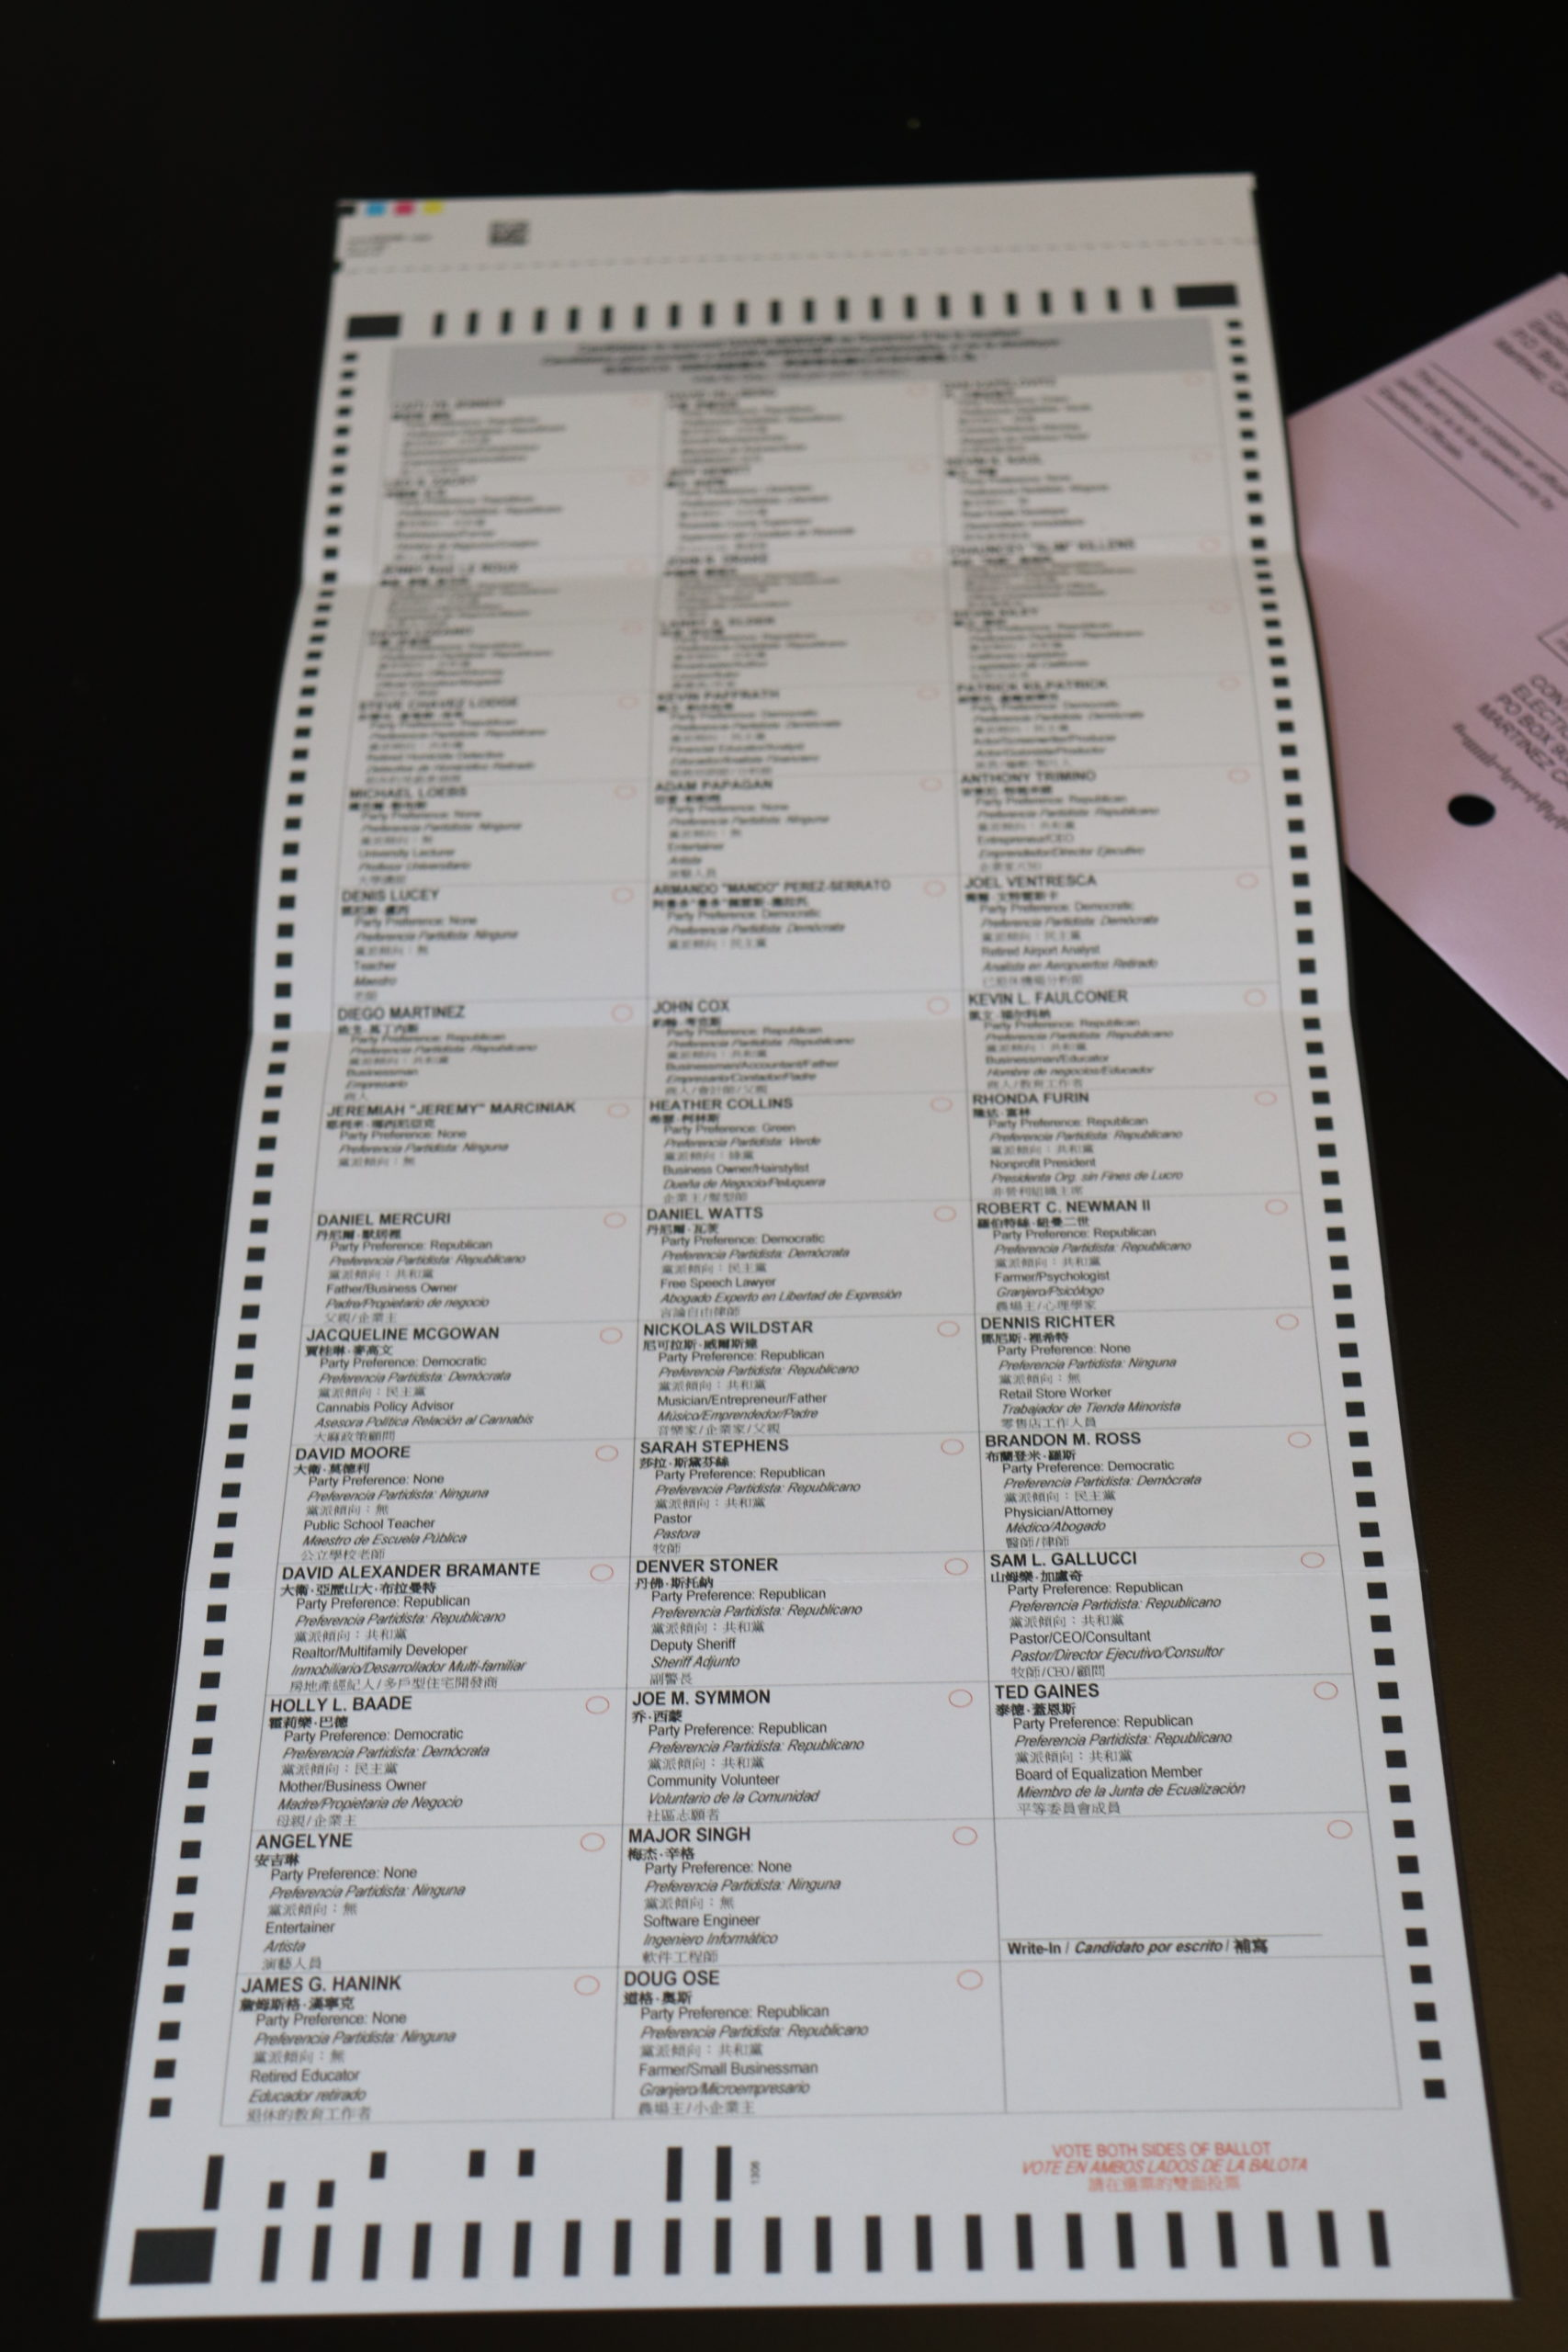 The second part of the official ballot.